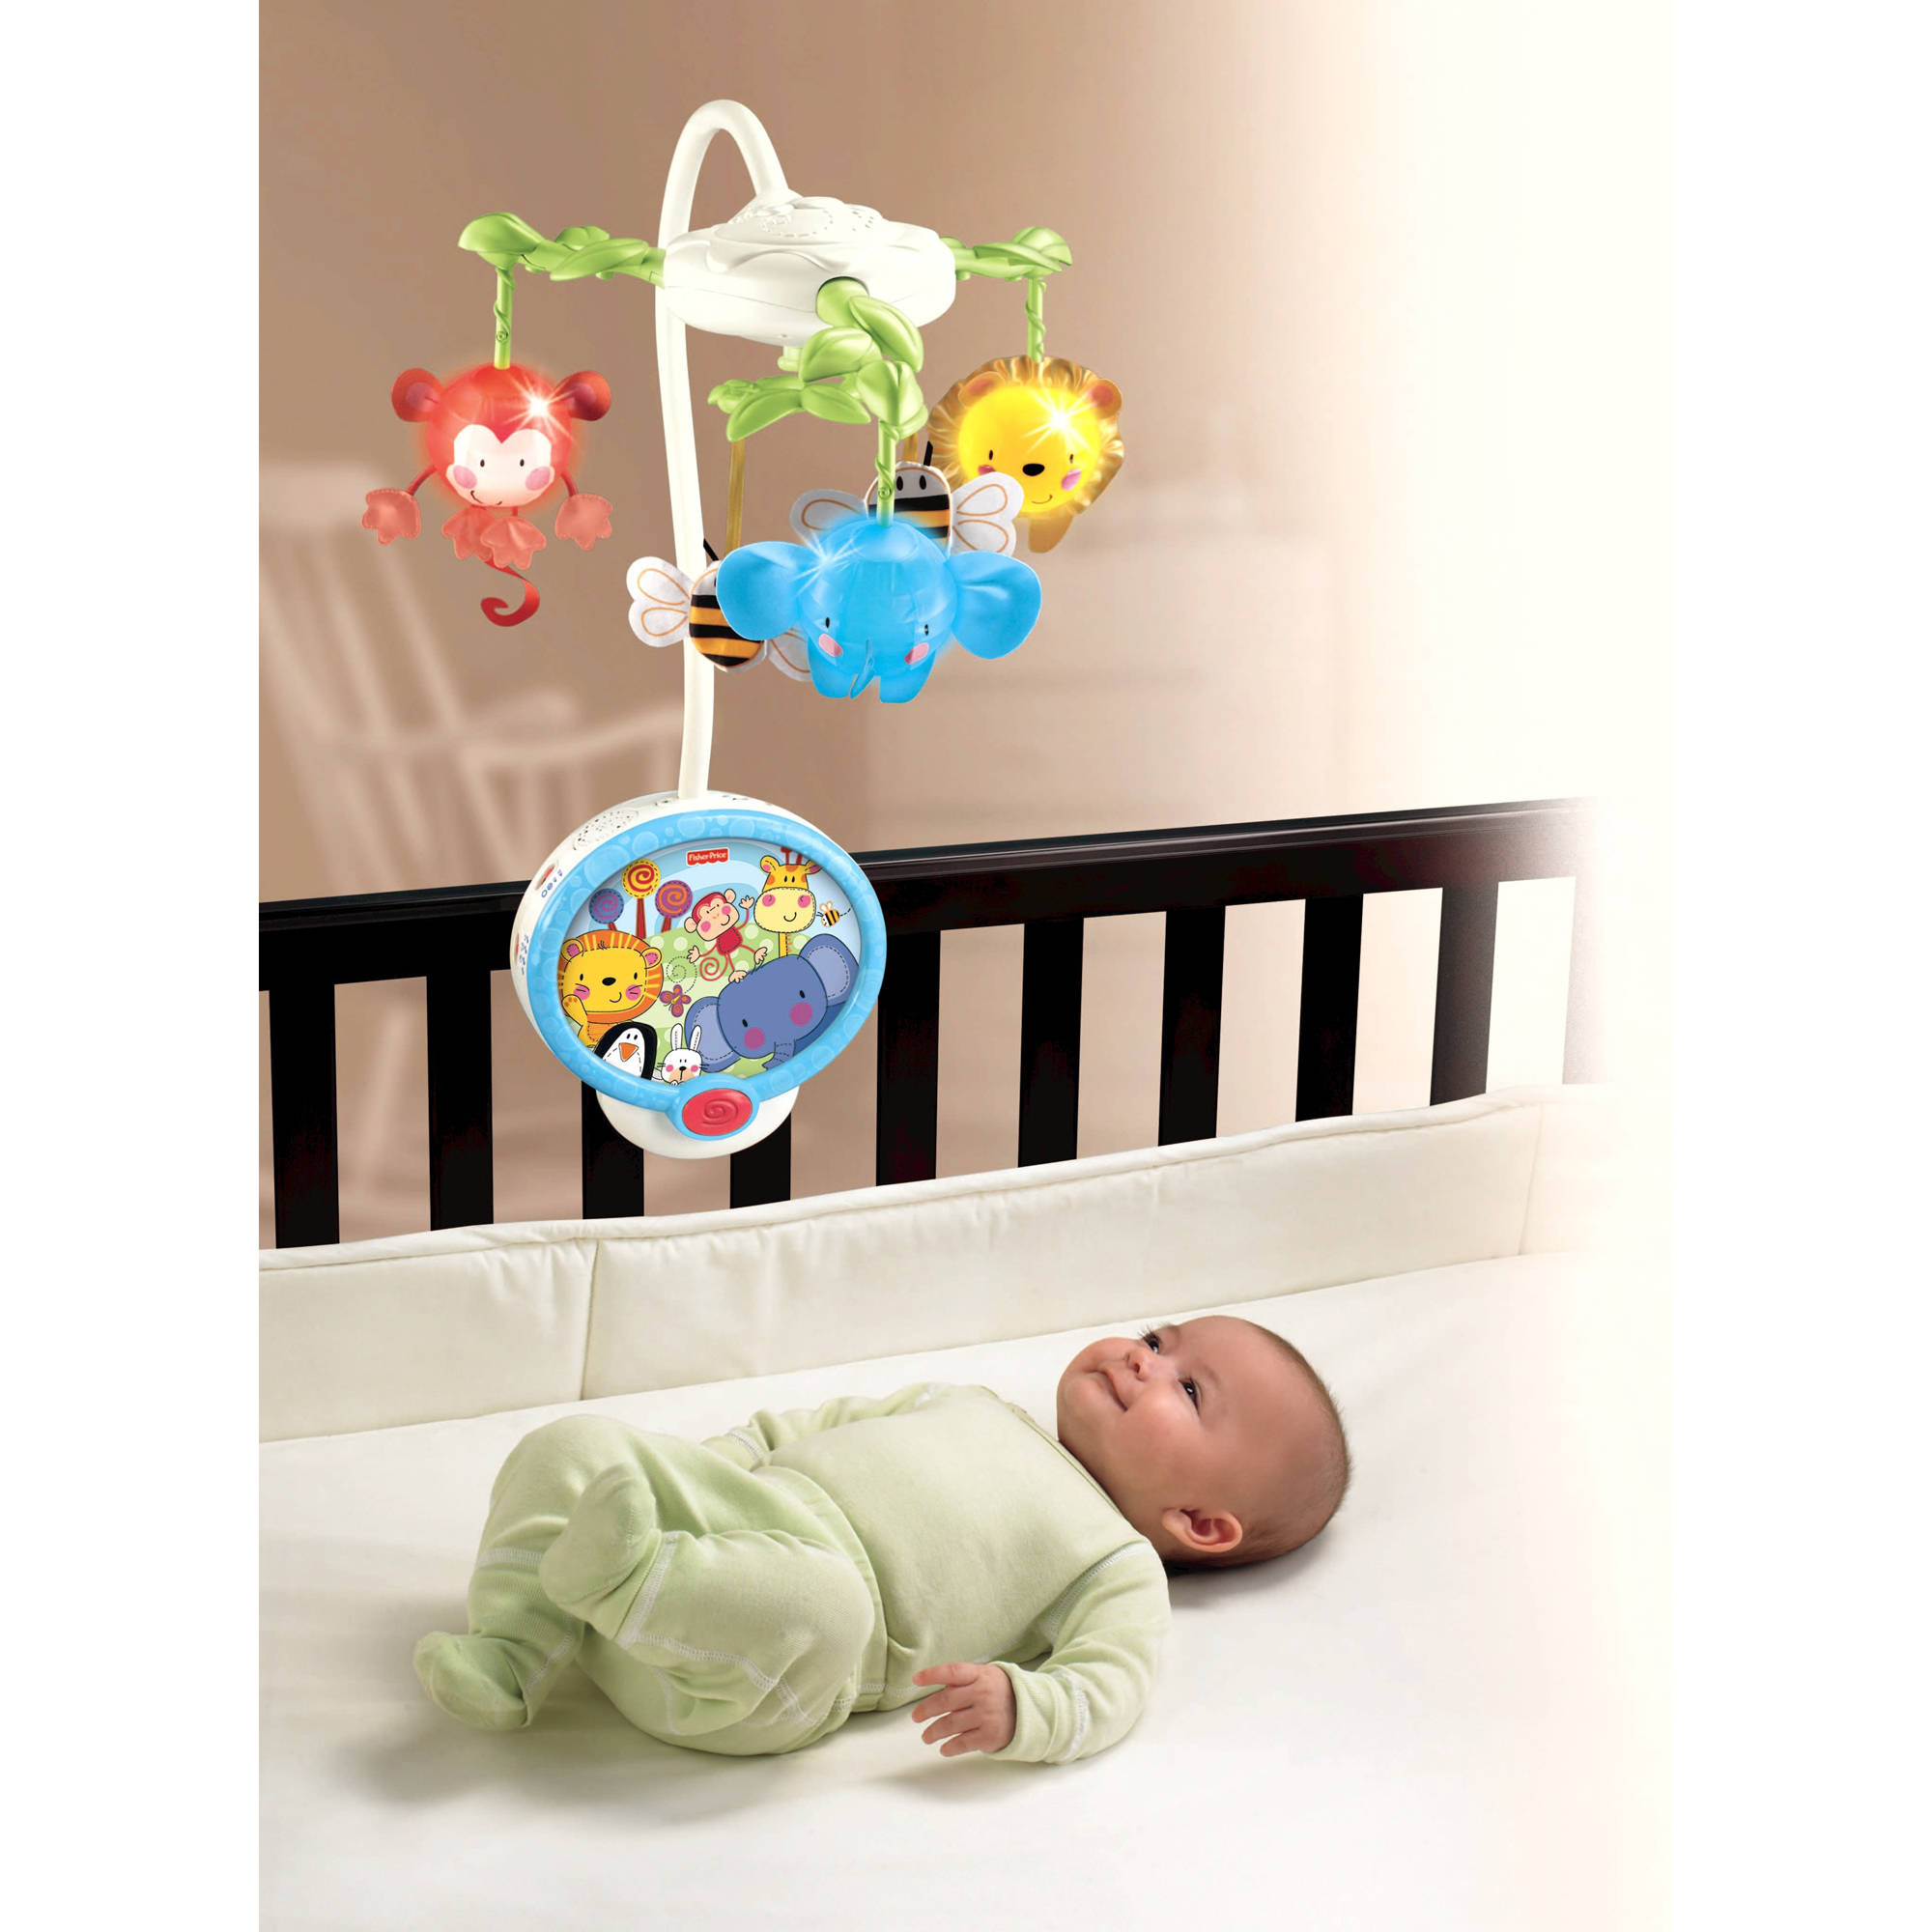 Fisher Price Discover 'N Grow Twinkling Lights Projection...